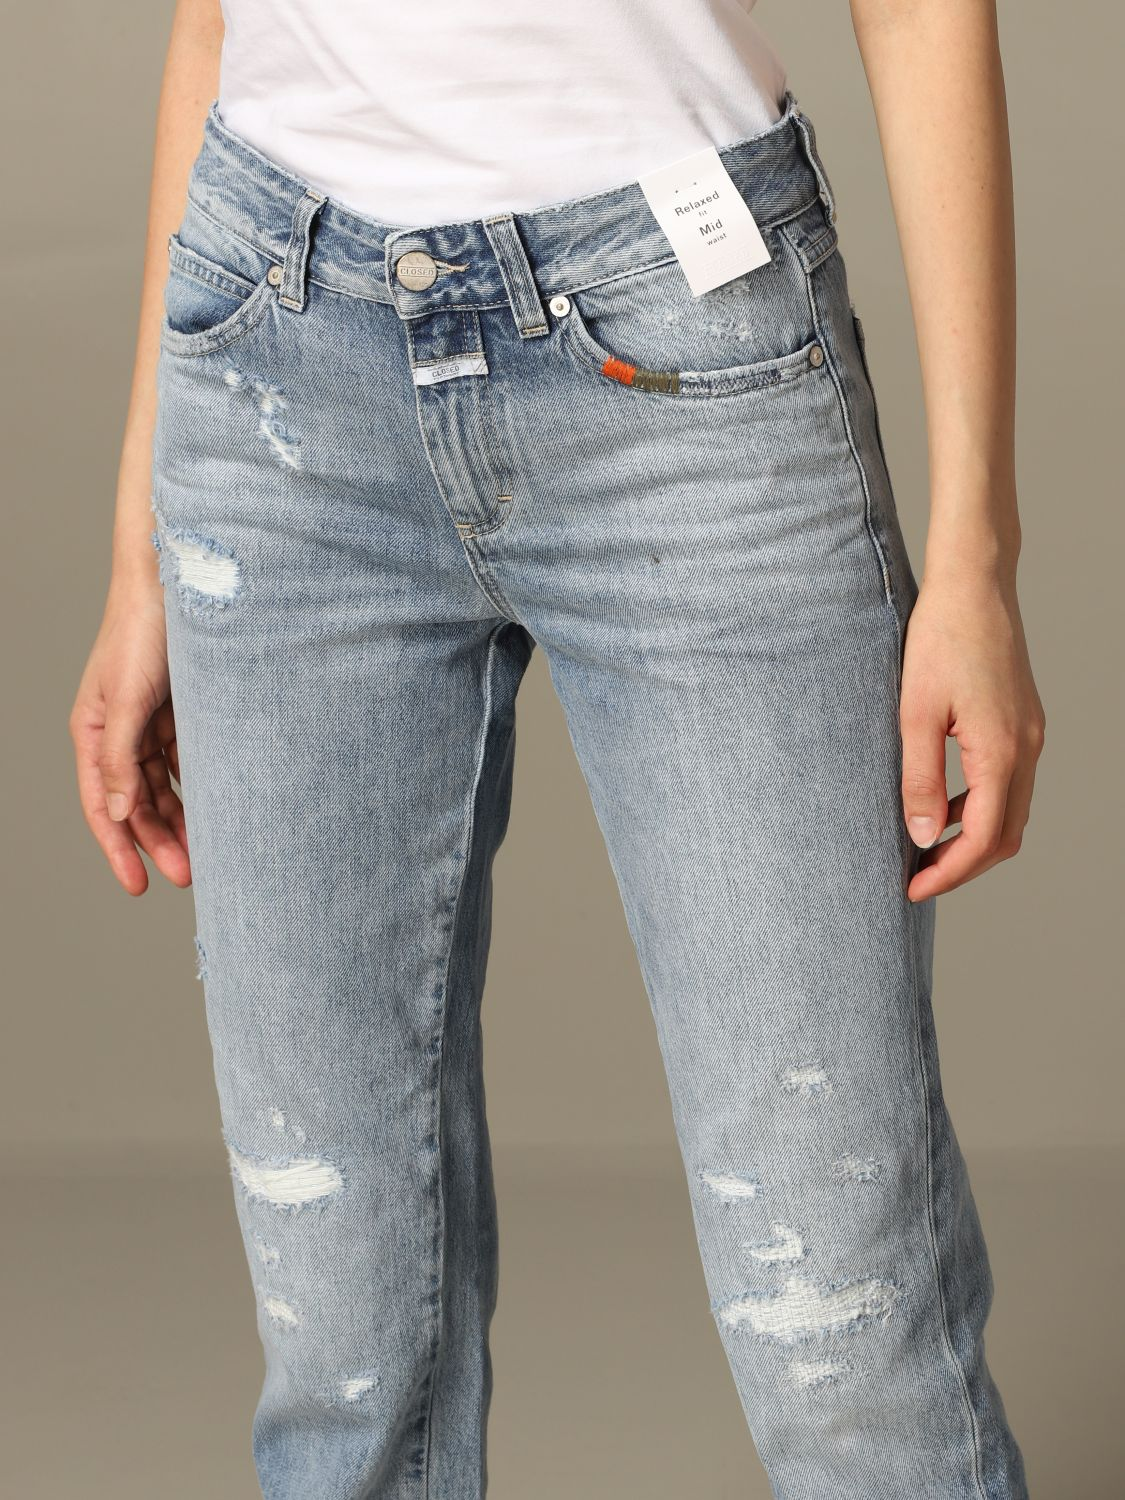 Jeans Closed: Jeans women Closed blue 3